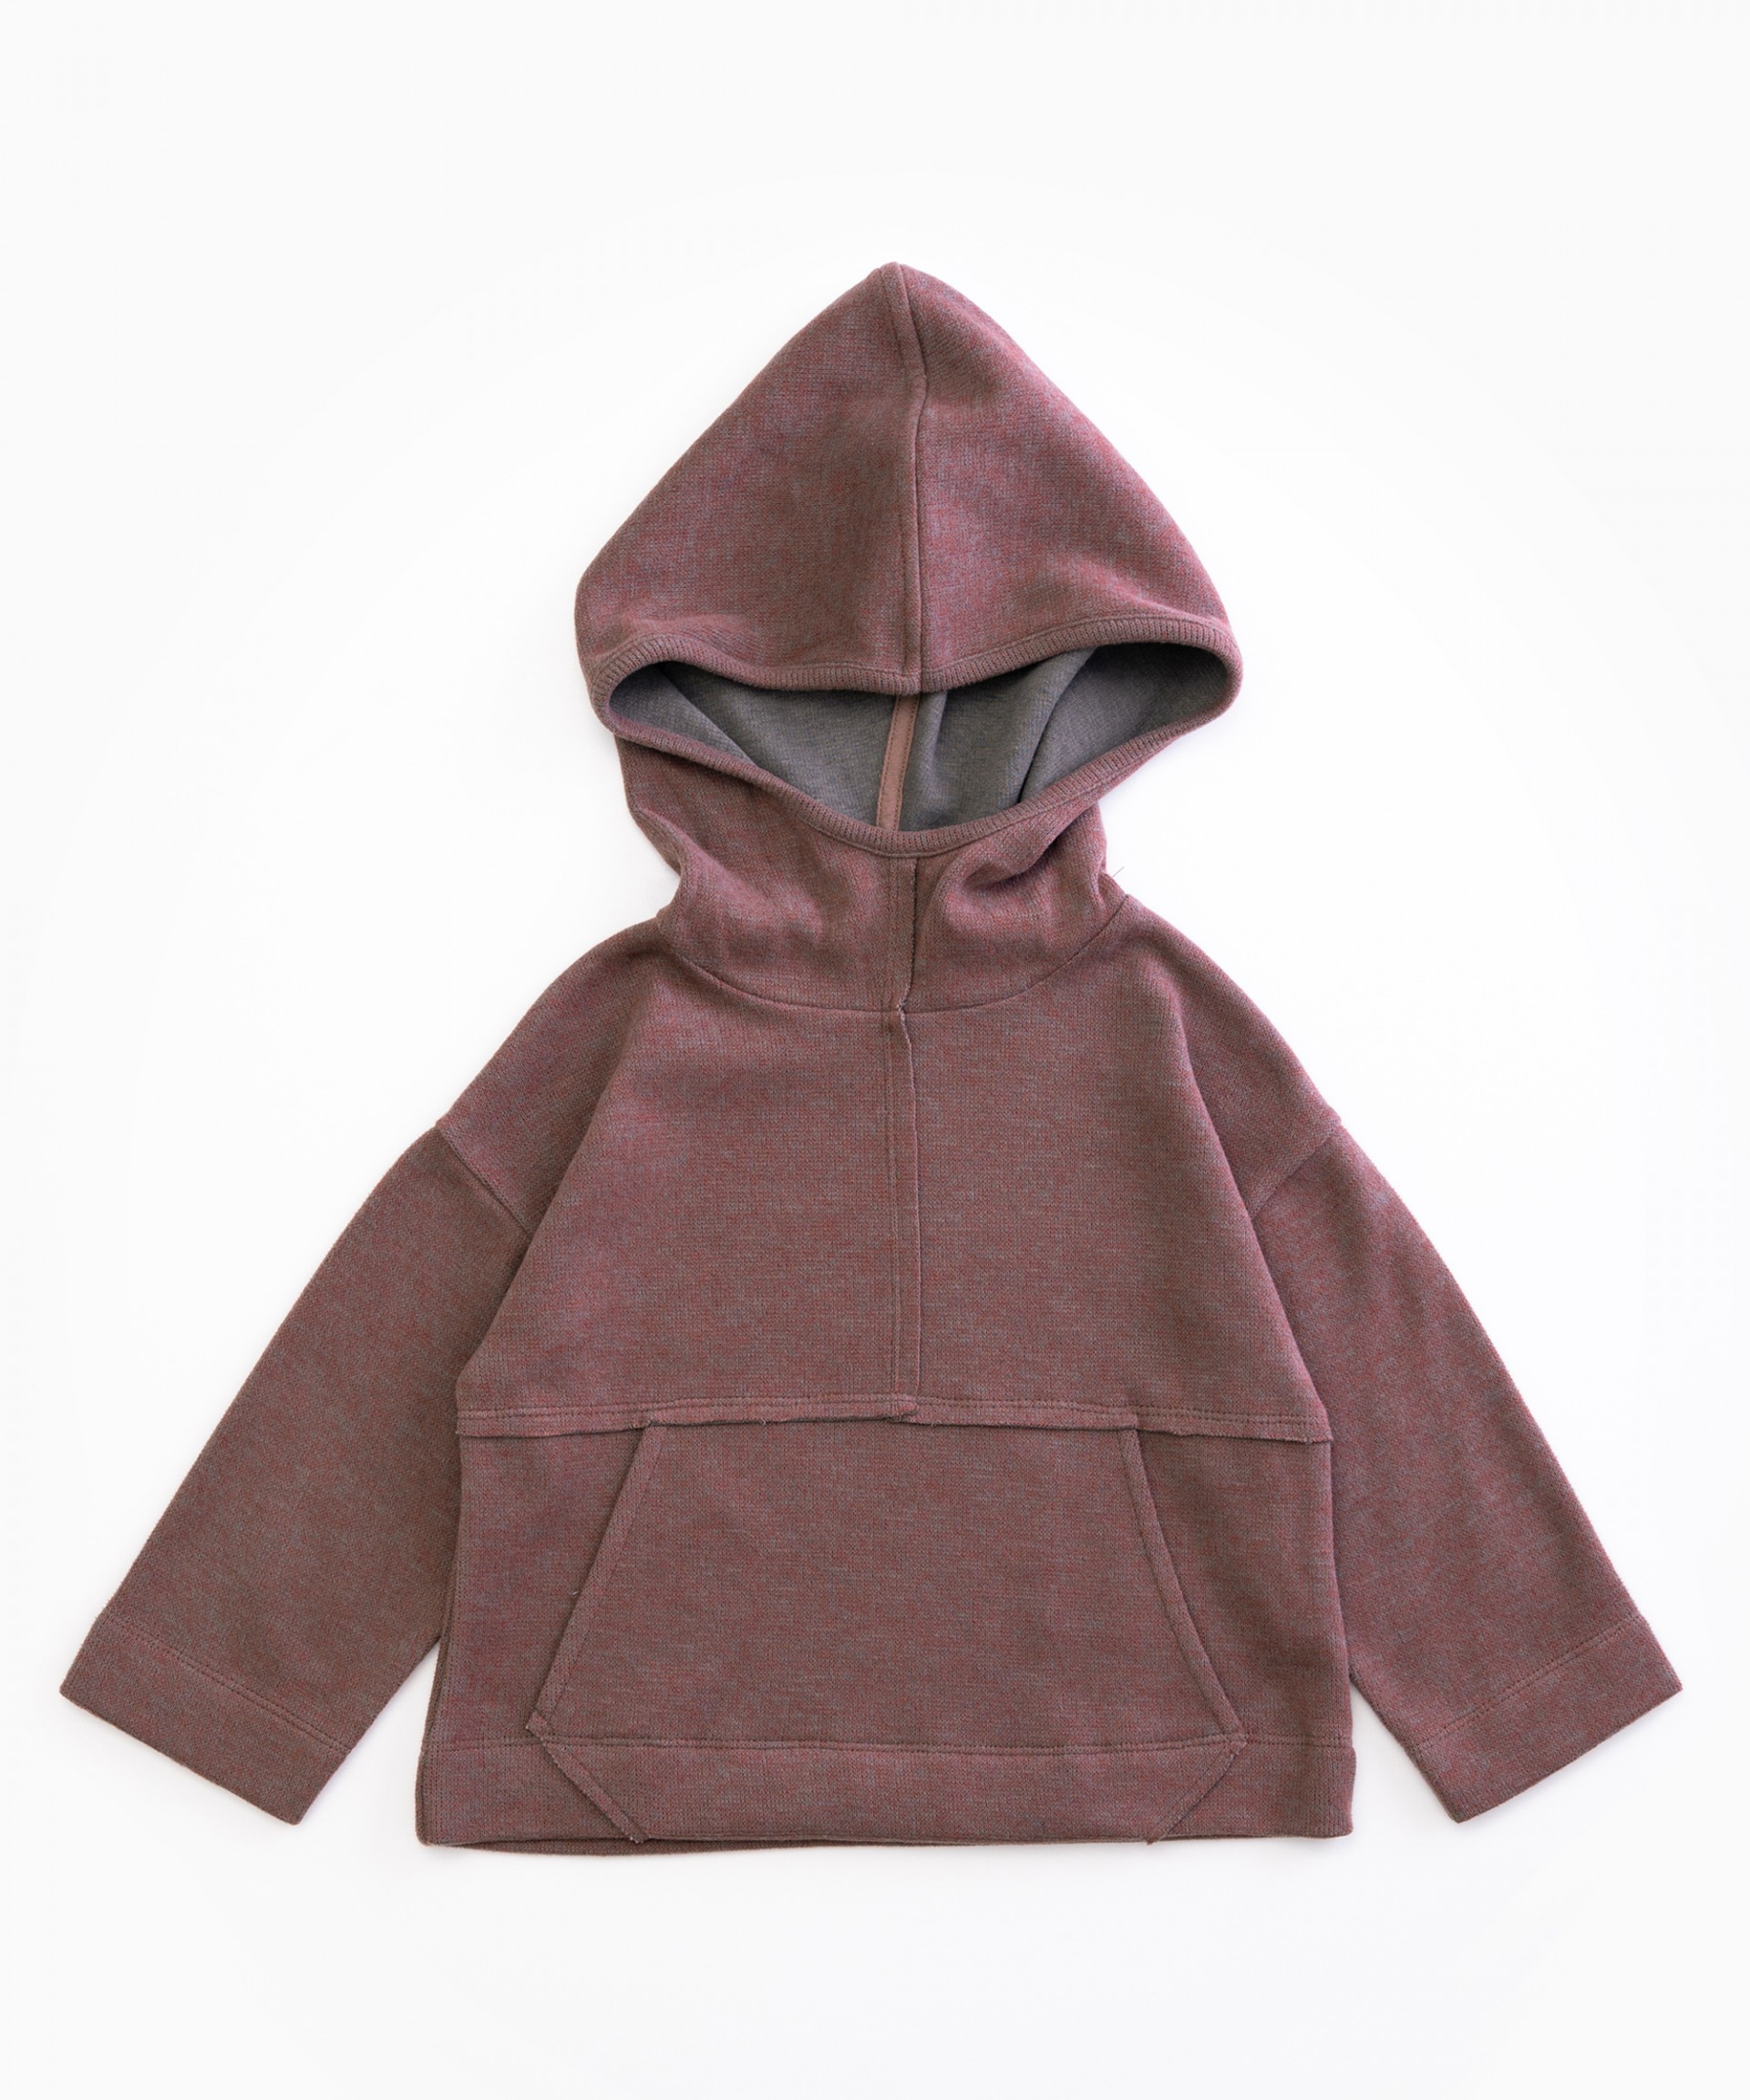 Cotton hooded sweater | Woodwork